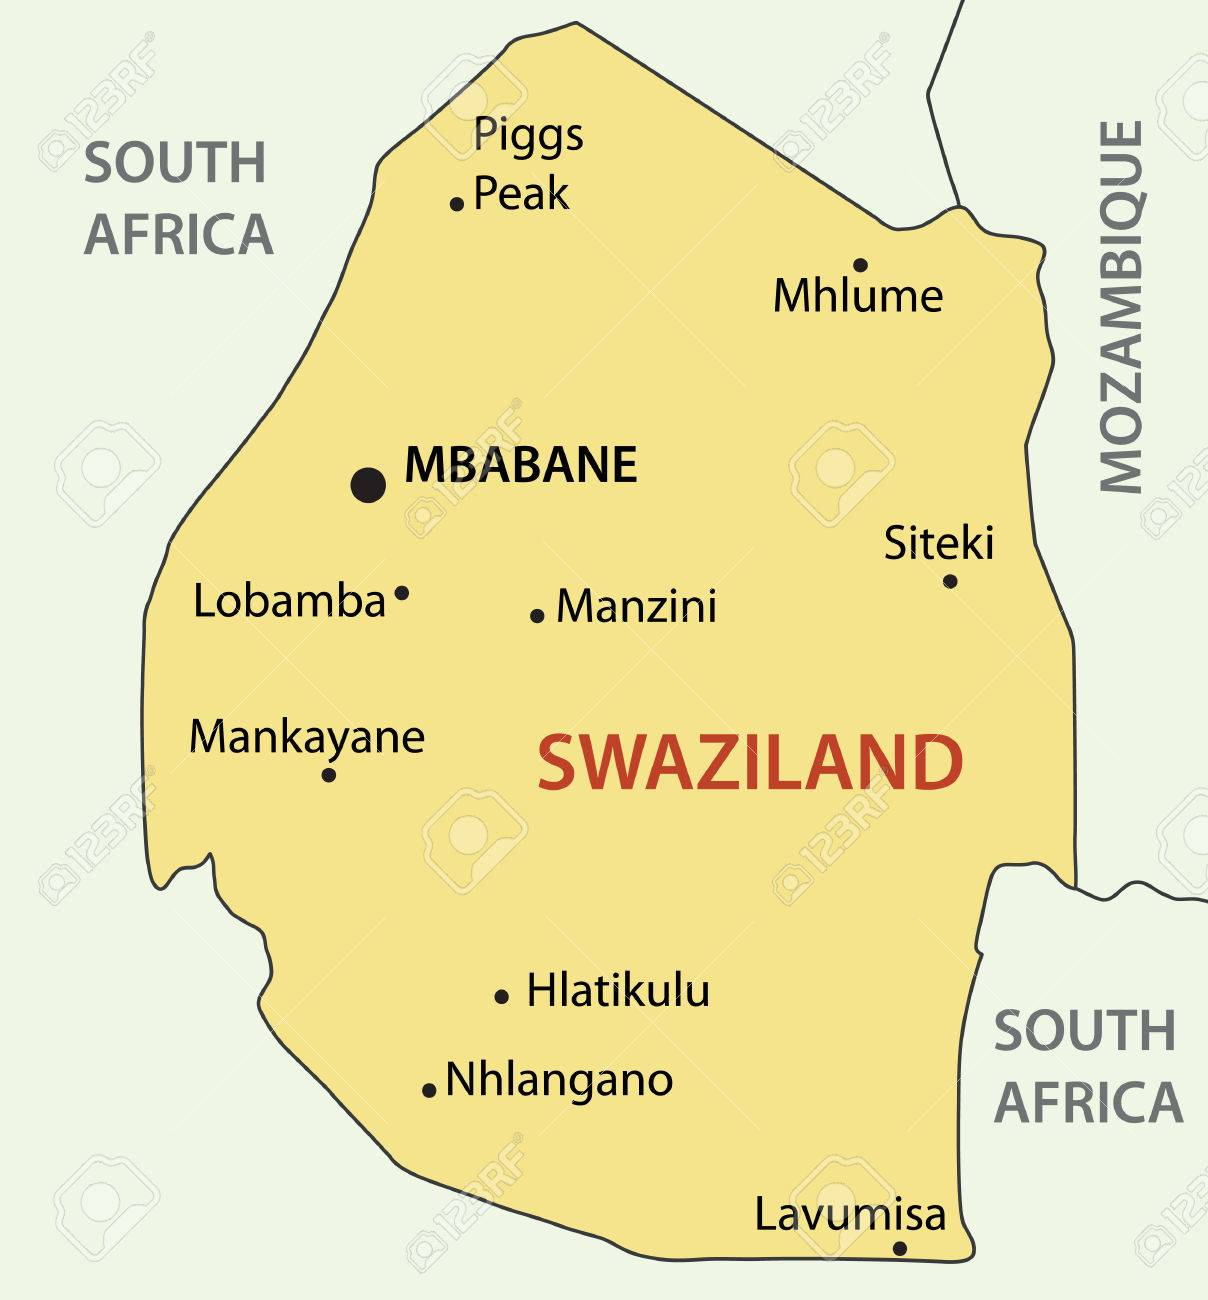 Kingdom Of Swaziland Vector Map Royalty Free Cliparts Vectors - Swaziland map